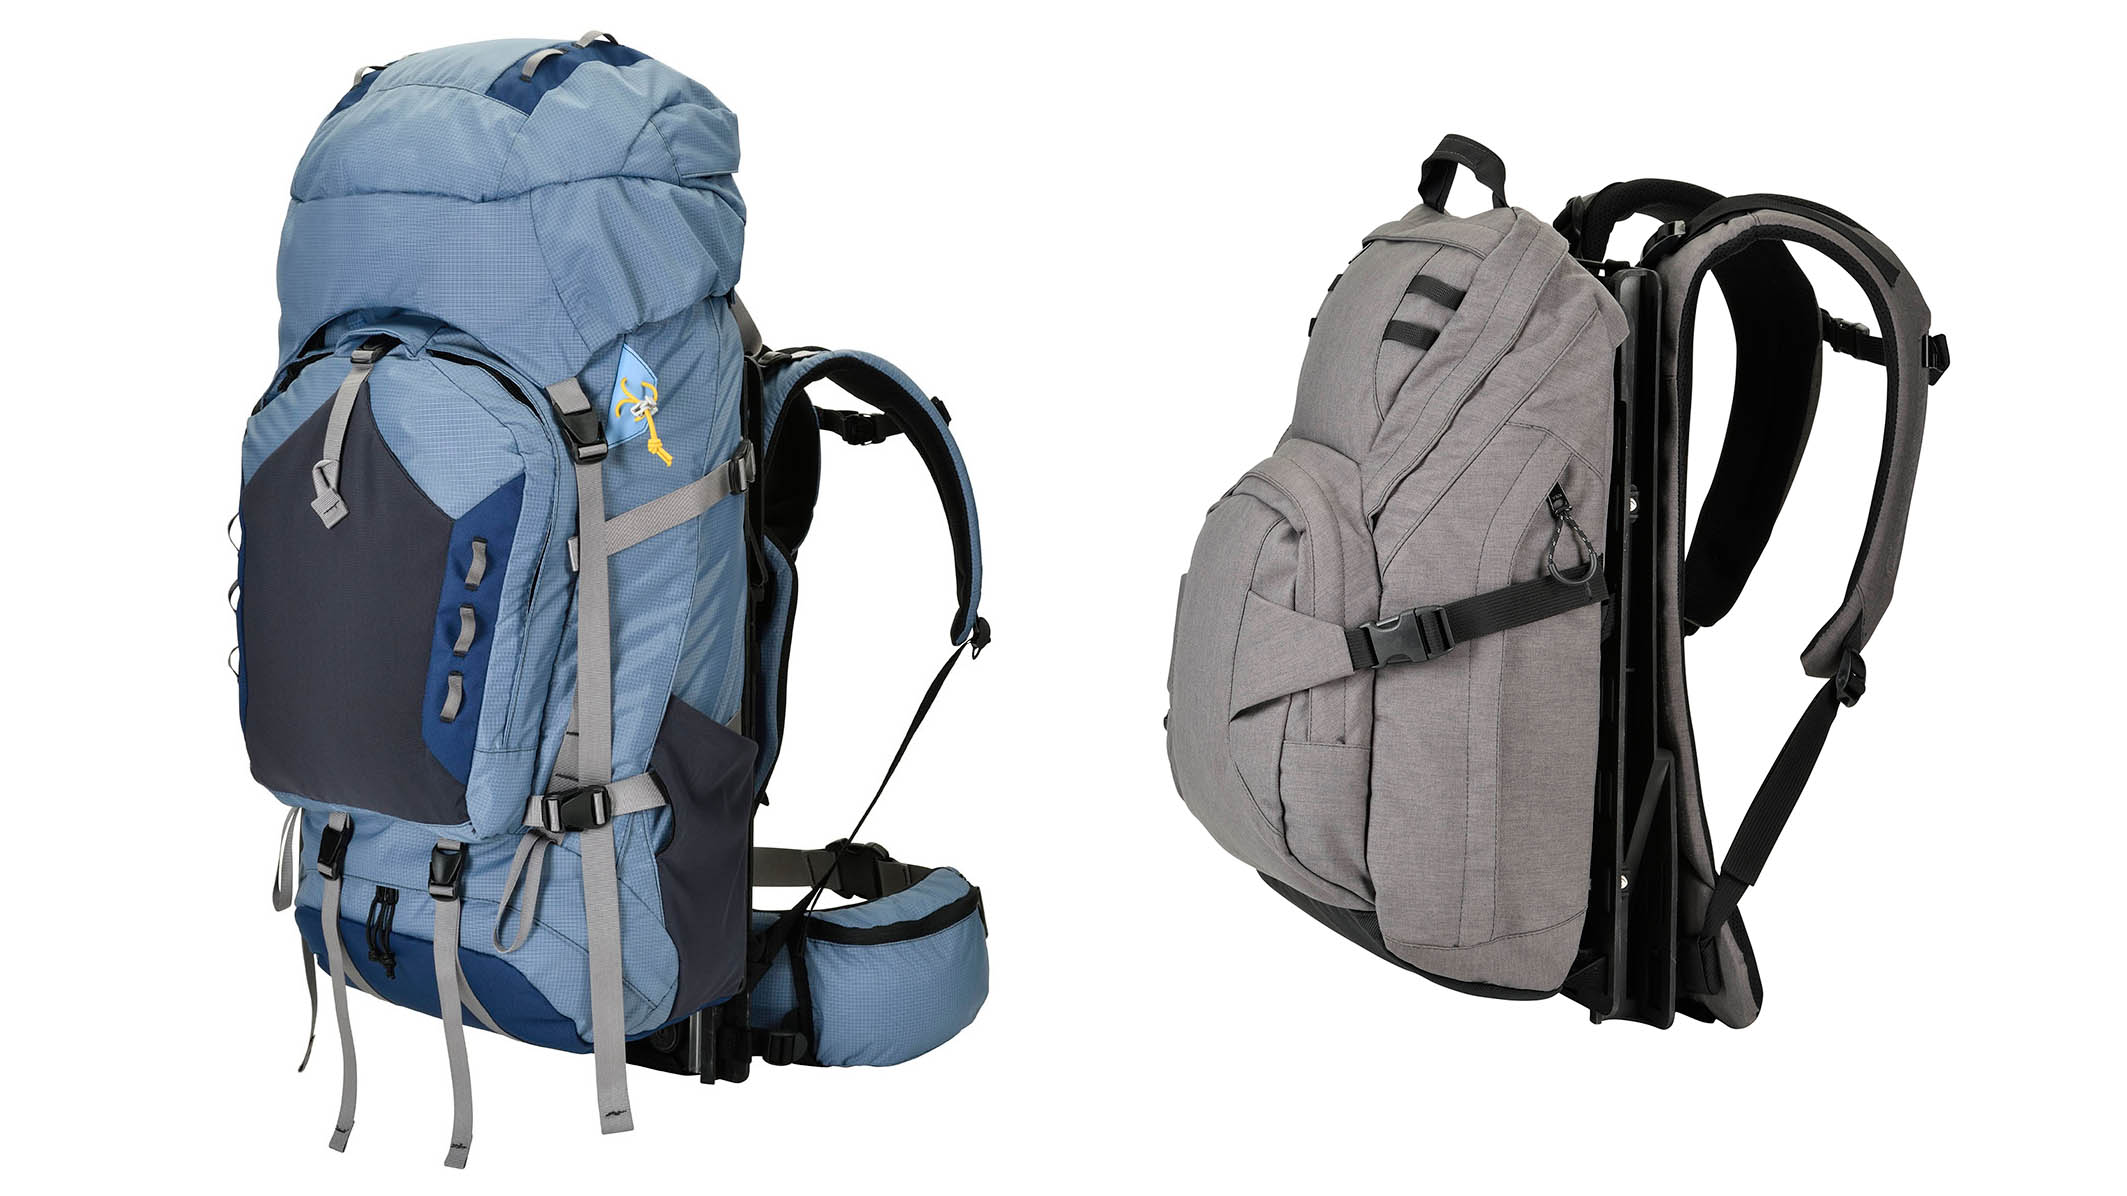 51429cd21e  Floating  backpack claimed to ease burden of travel